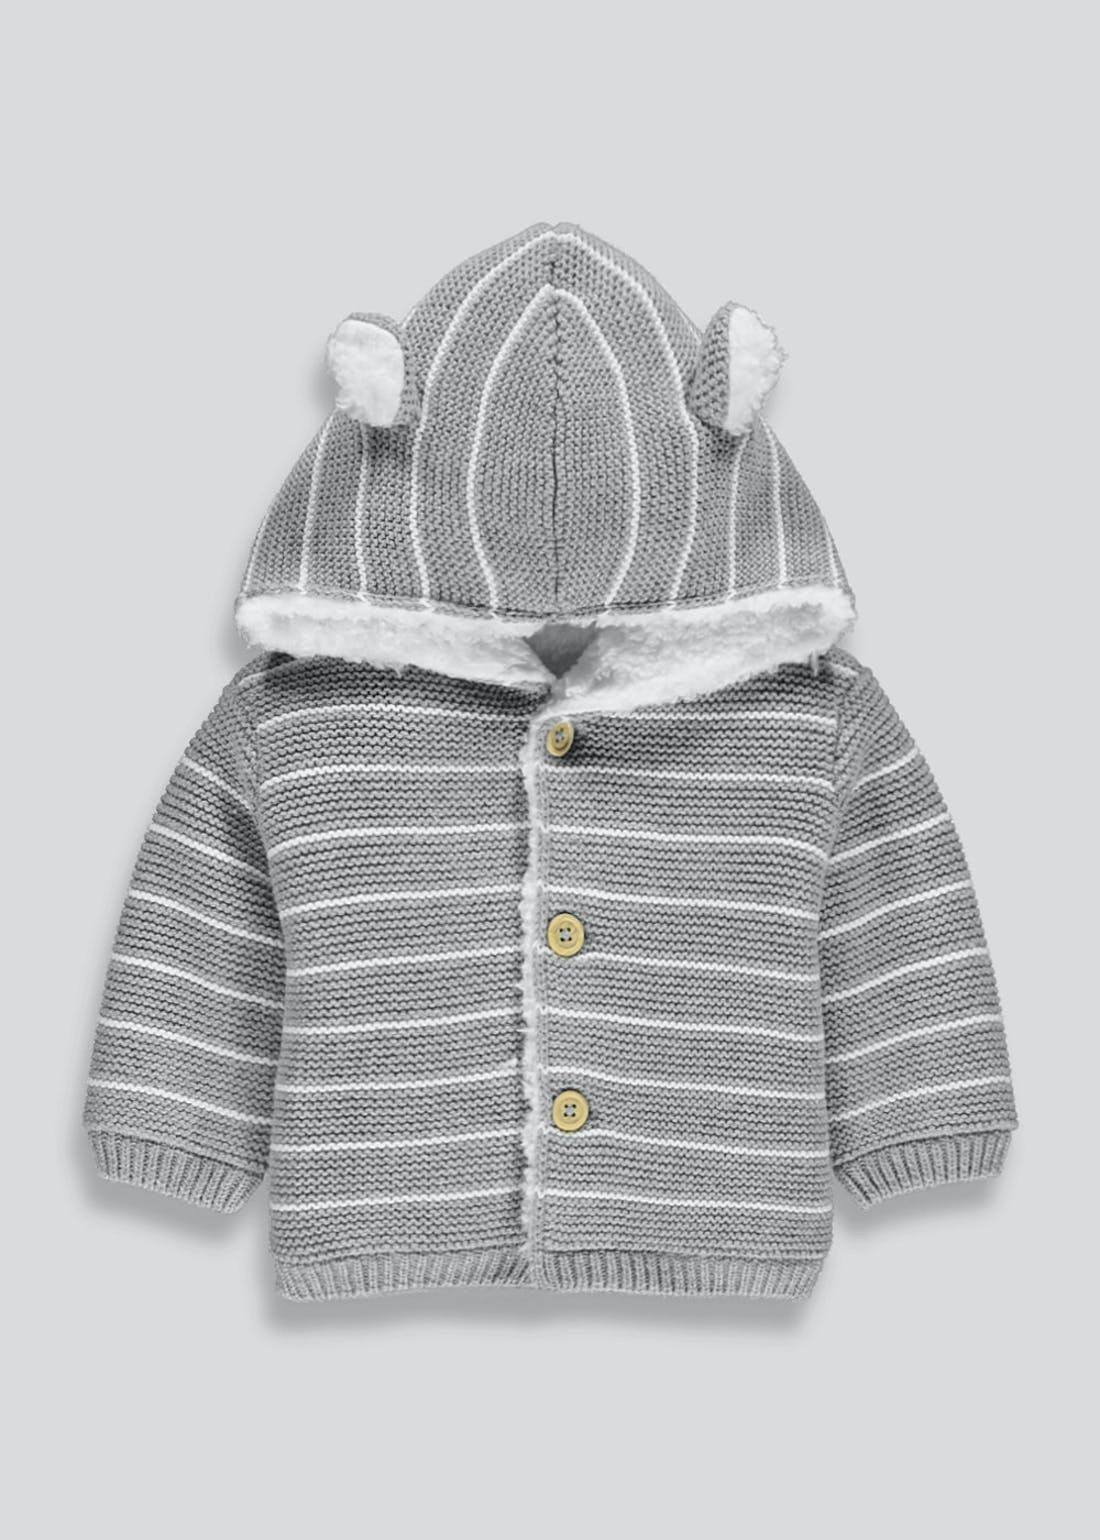 Unisex Stripe 3D Ears Cardigan (Tiny Baby-18mths)